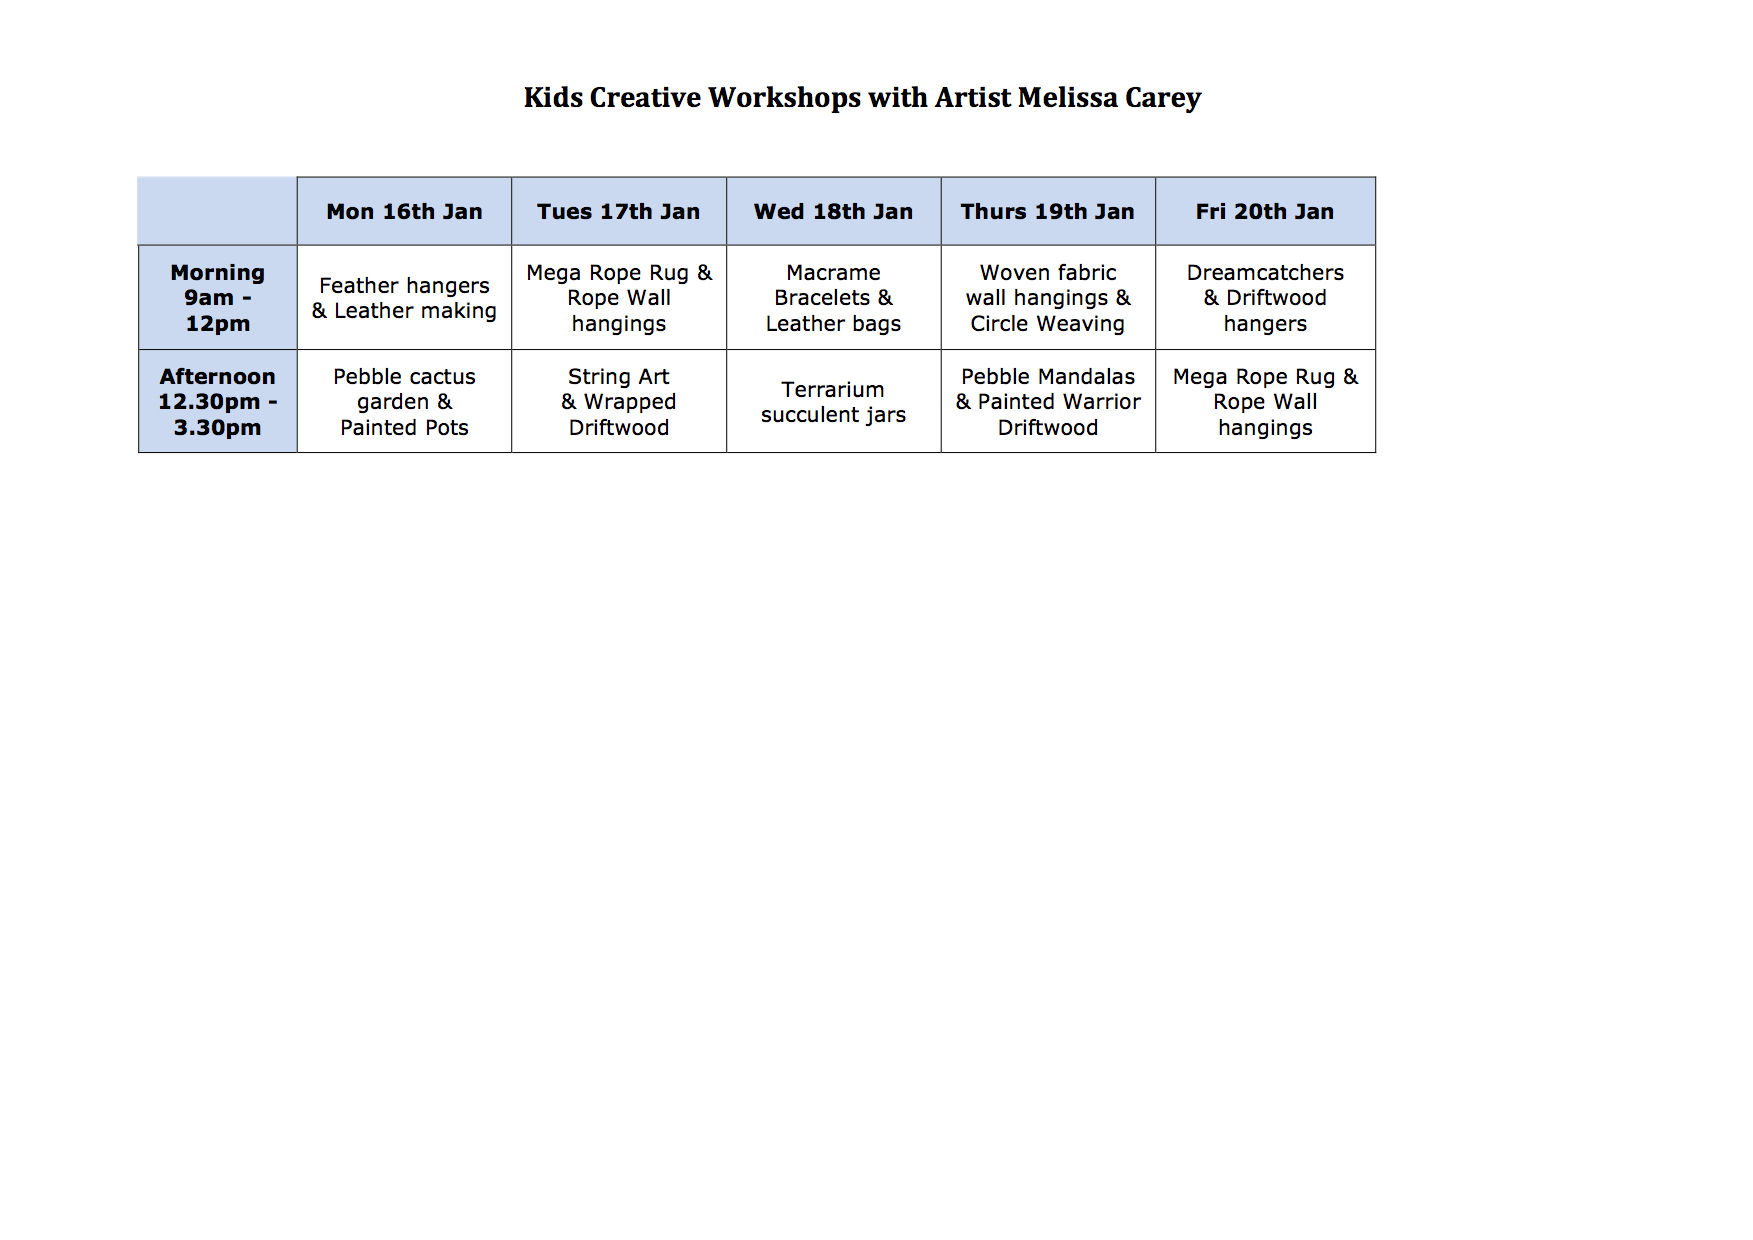 Kids creative workshops timetable